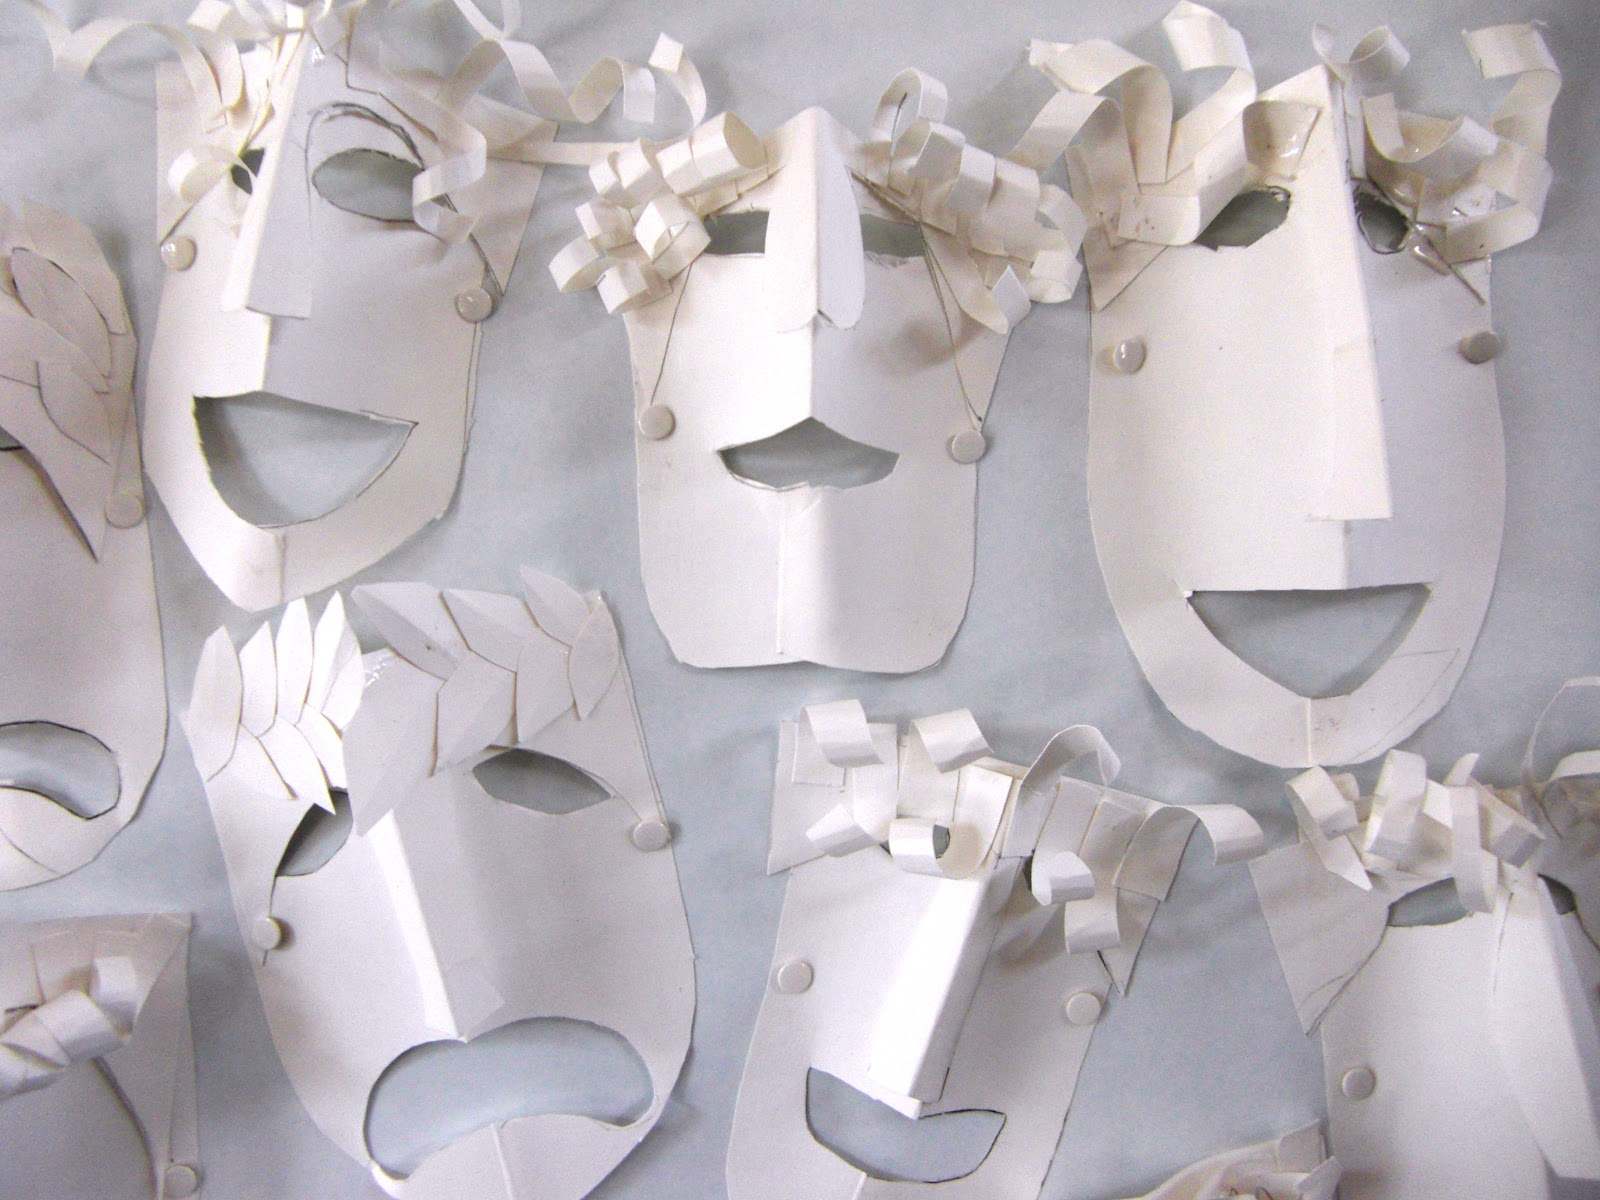 The mask paper